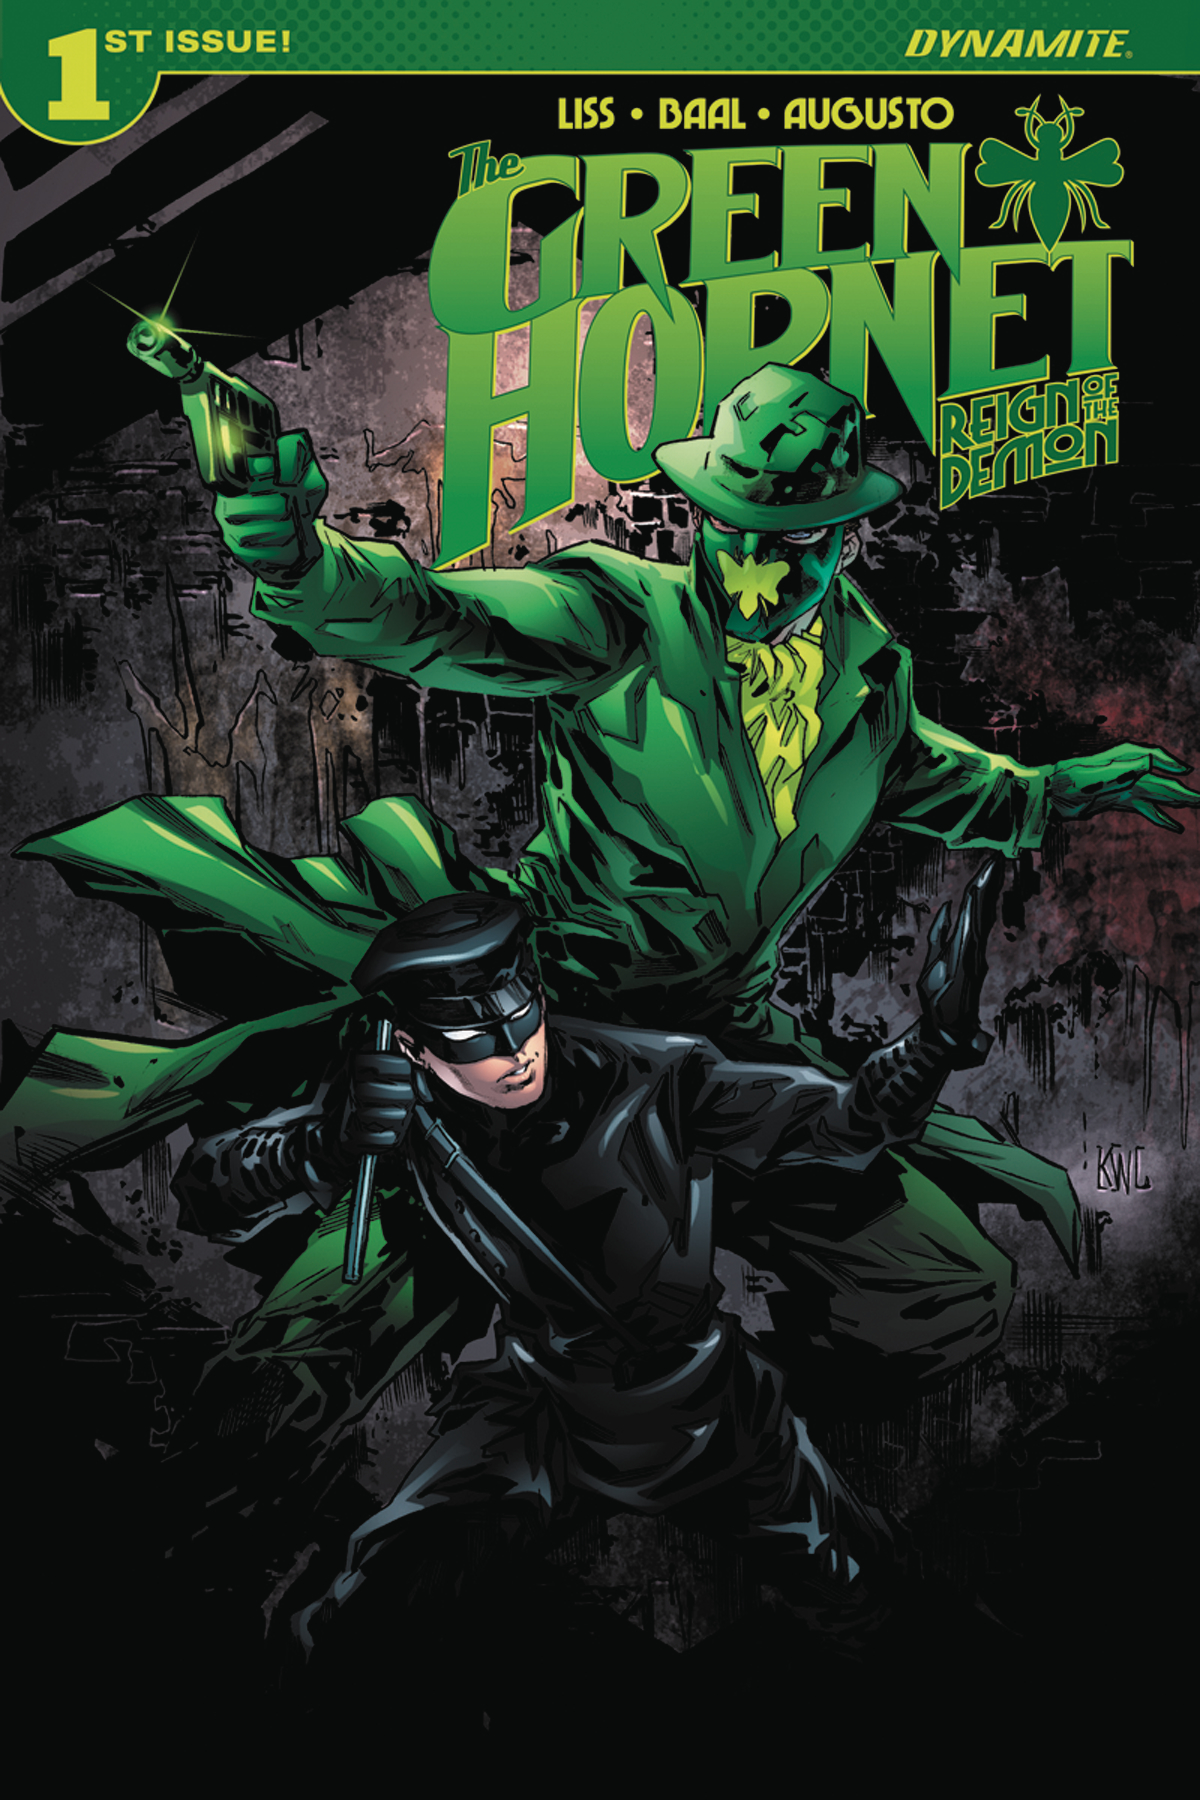 GREEN HORNET REIGN OF DEMON #1 (OF 4) CVR A LASHLEY